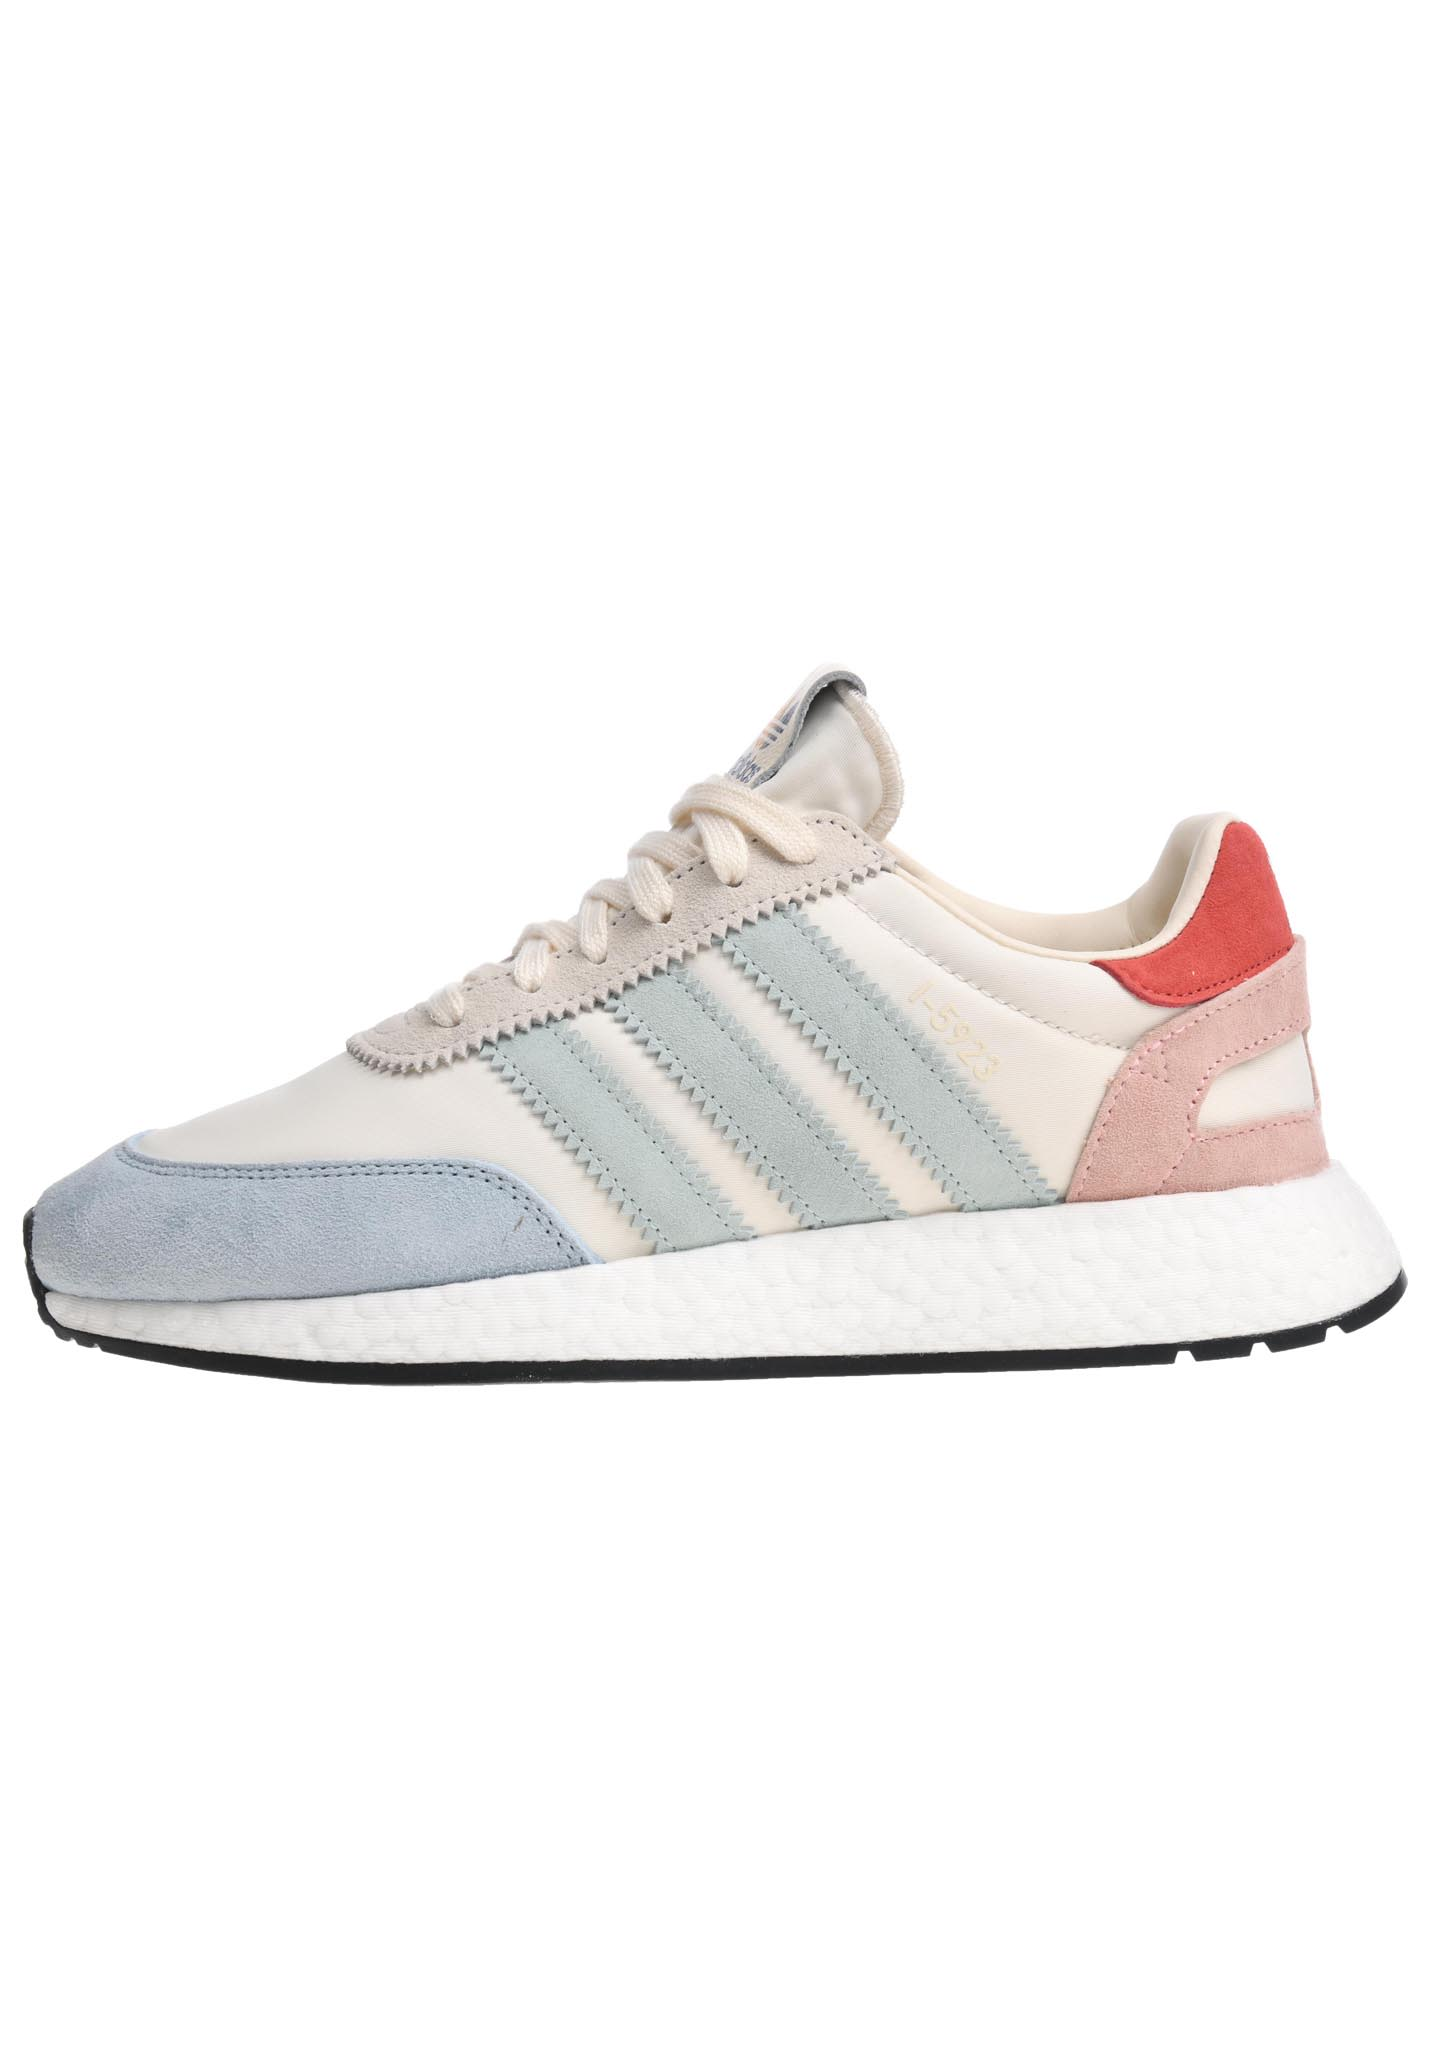 new concept c3bfa 17488 ADIDAS ORIGINALS I-5923 Pride - Sneakers voor Heren - Beige - Planet Sports